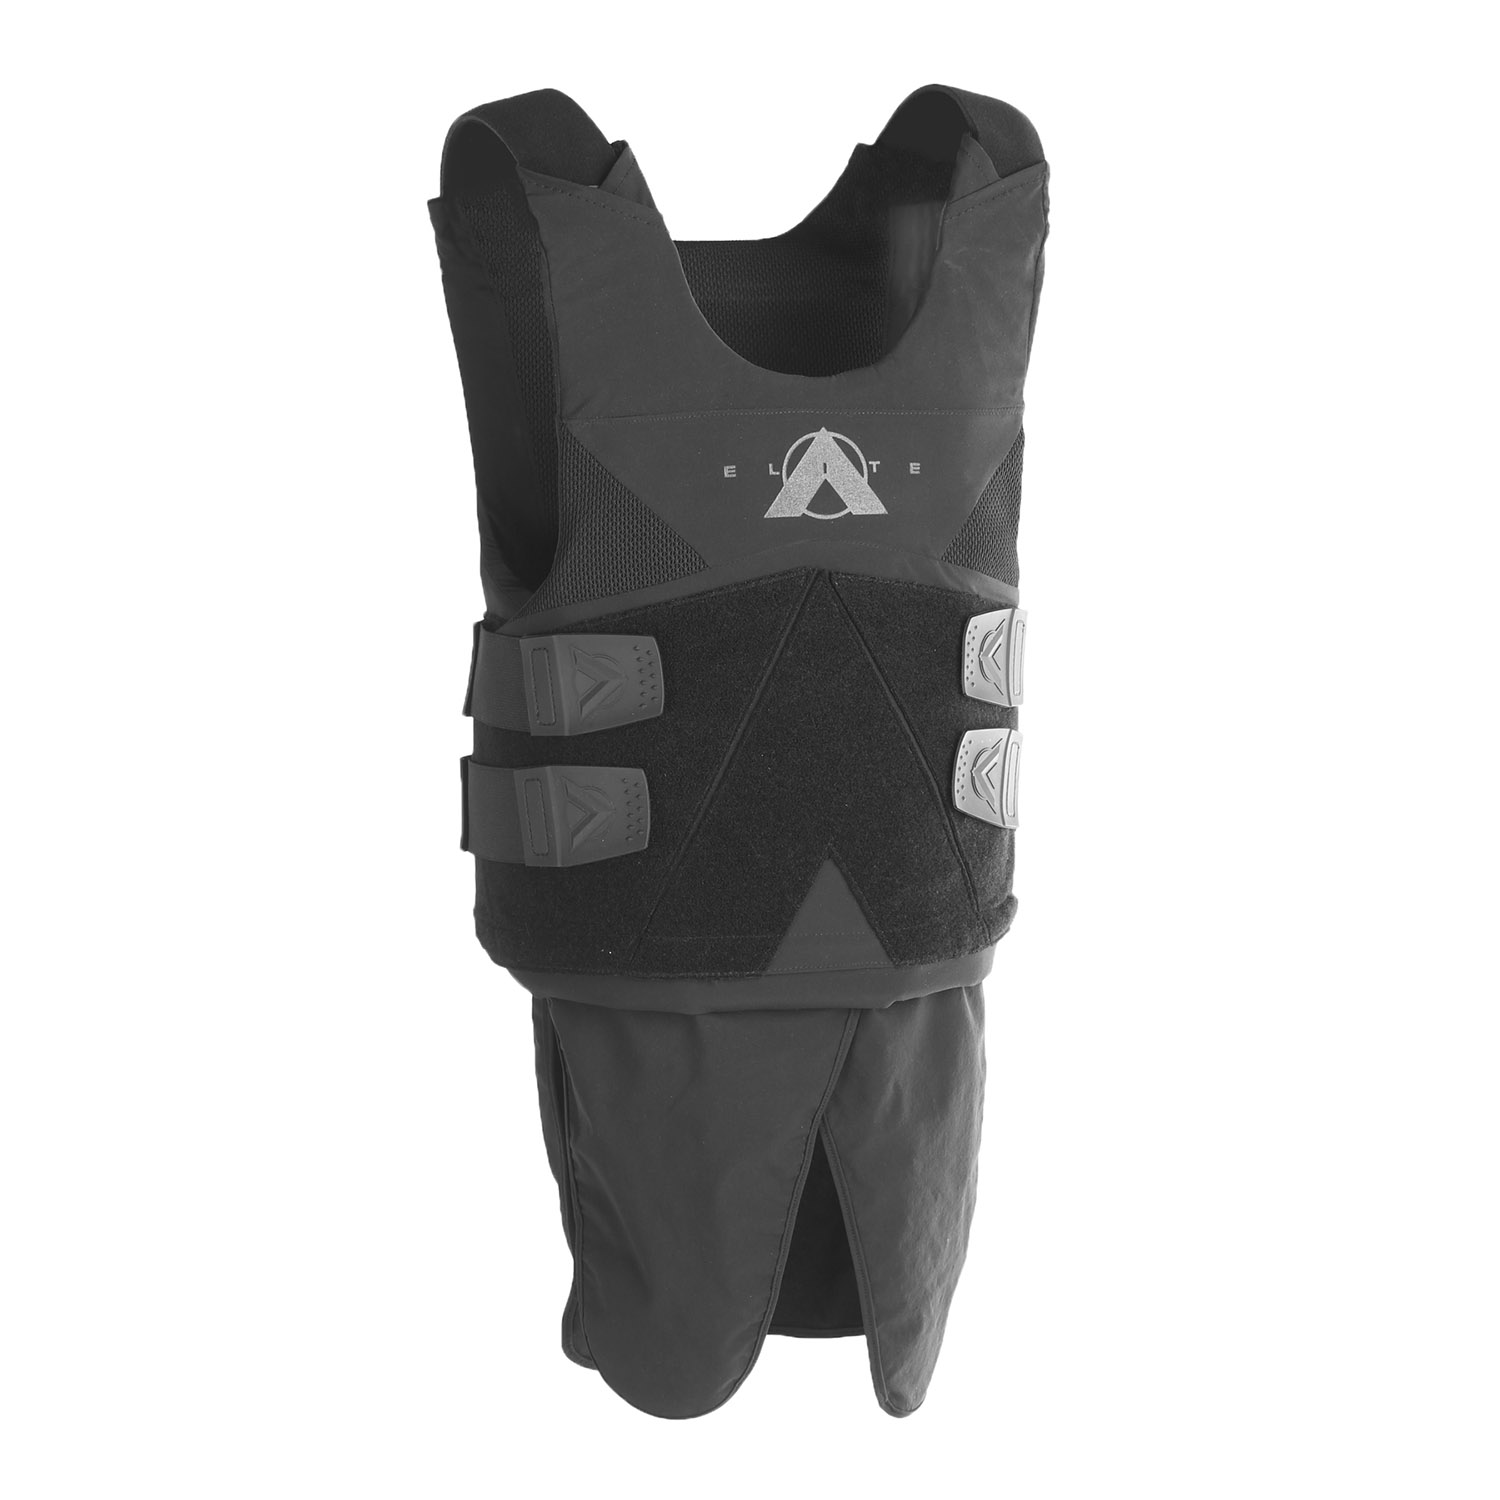 Point Blank Alpha Elite AXII vest with Elite Carrier